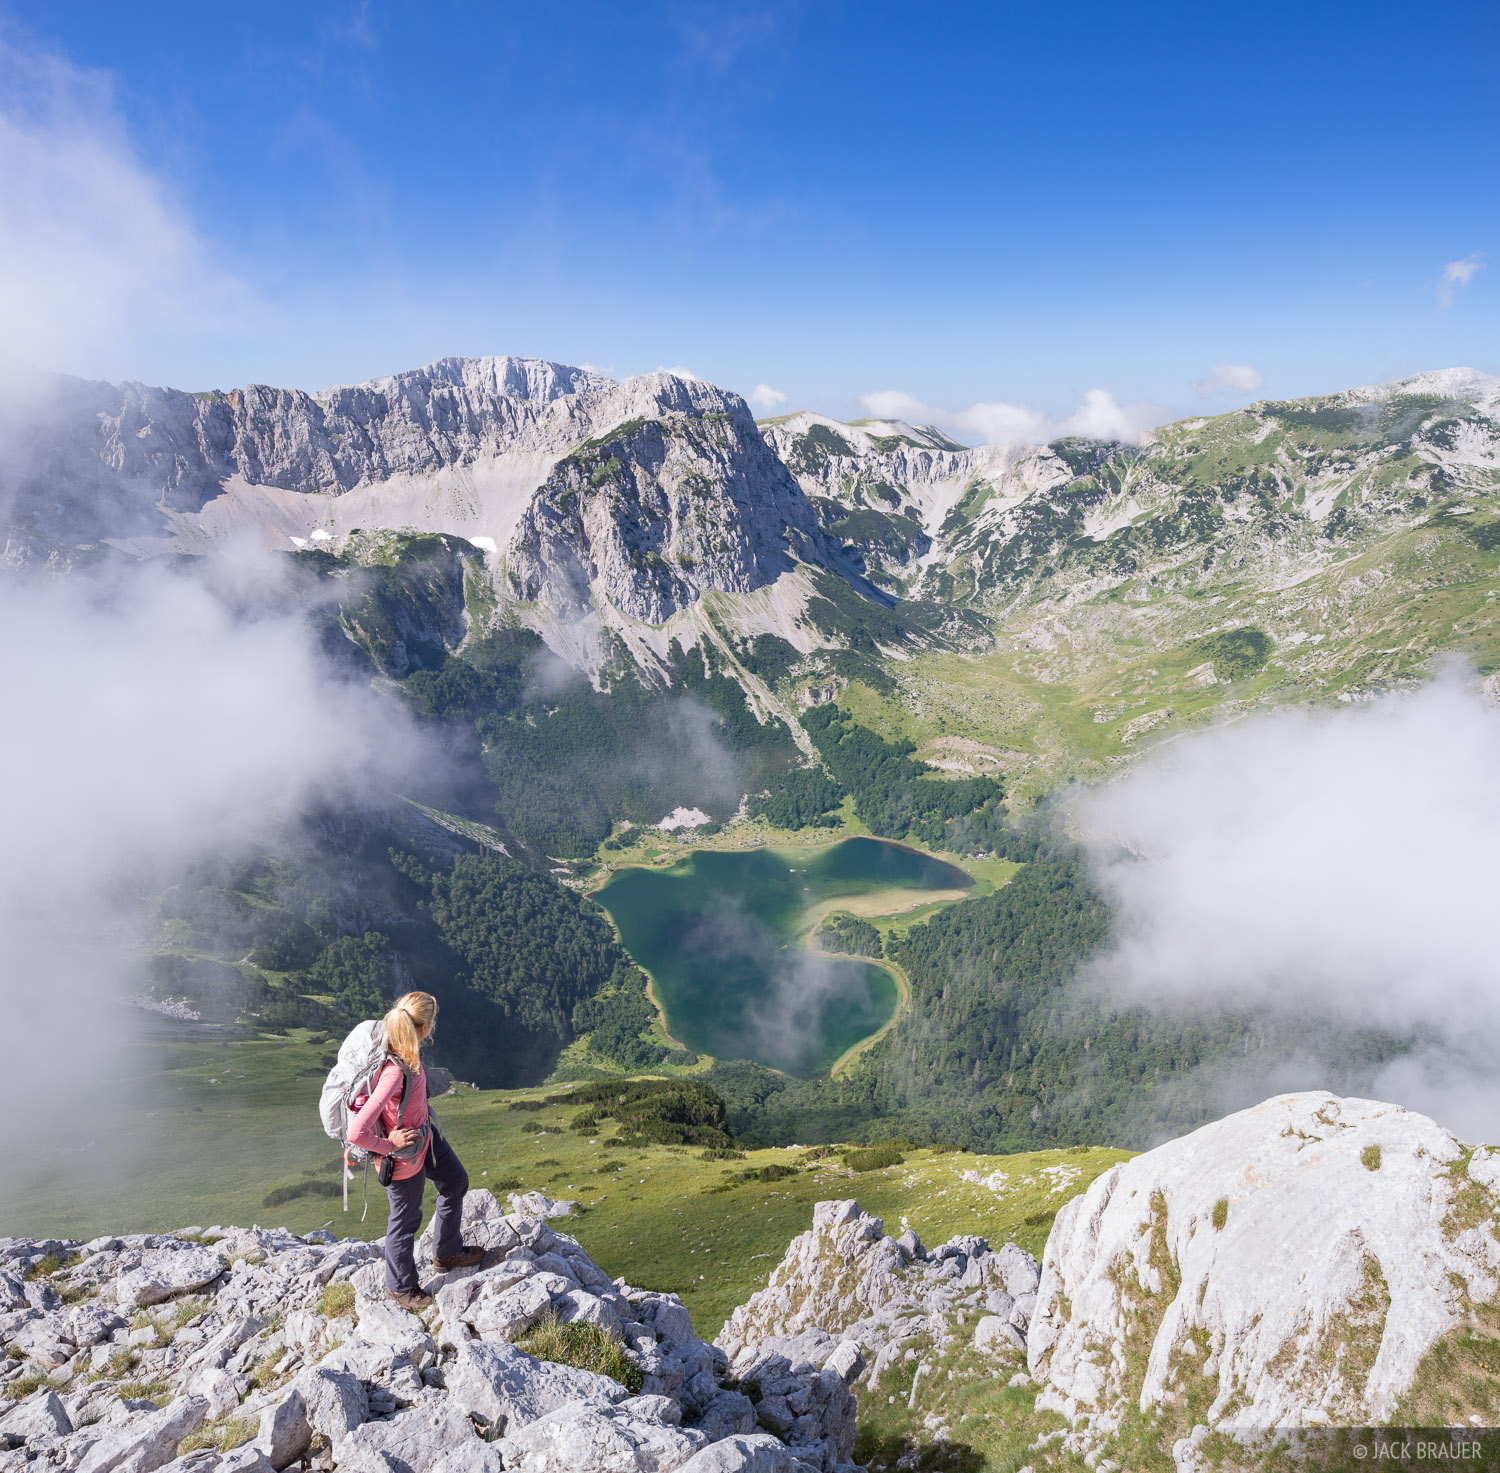 Trnovacko Jezero, hiker, Montenegro, Bosnia,Dinaric Alps, photo